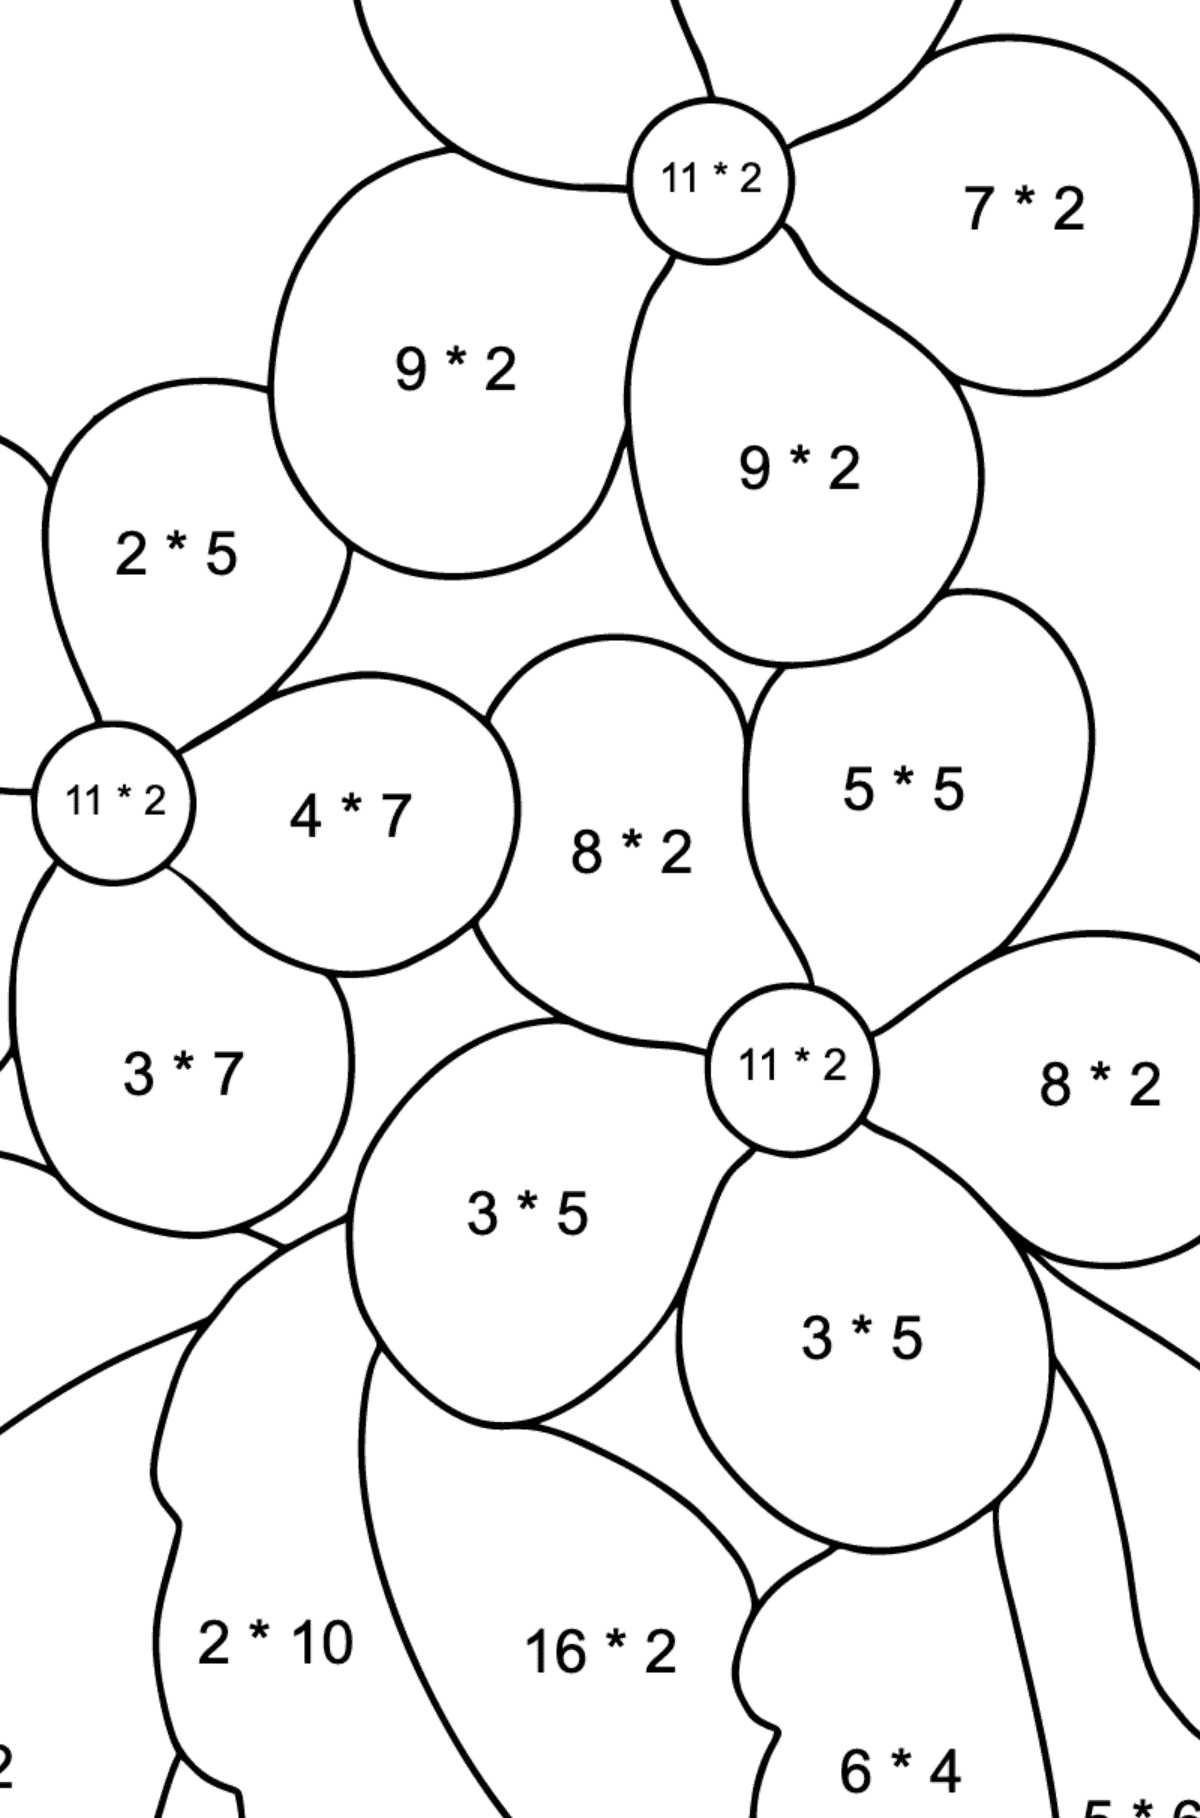 Spring Coloring Page - Time for Flowers for Children  - Color by Number Multiplication